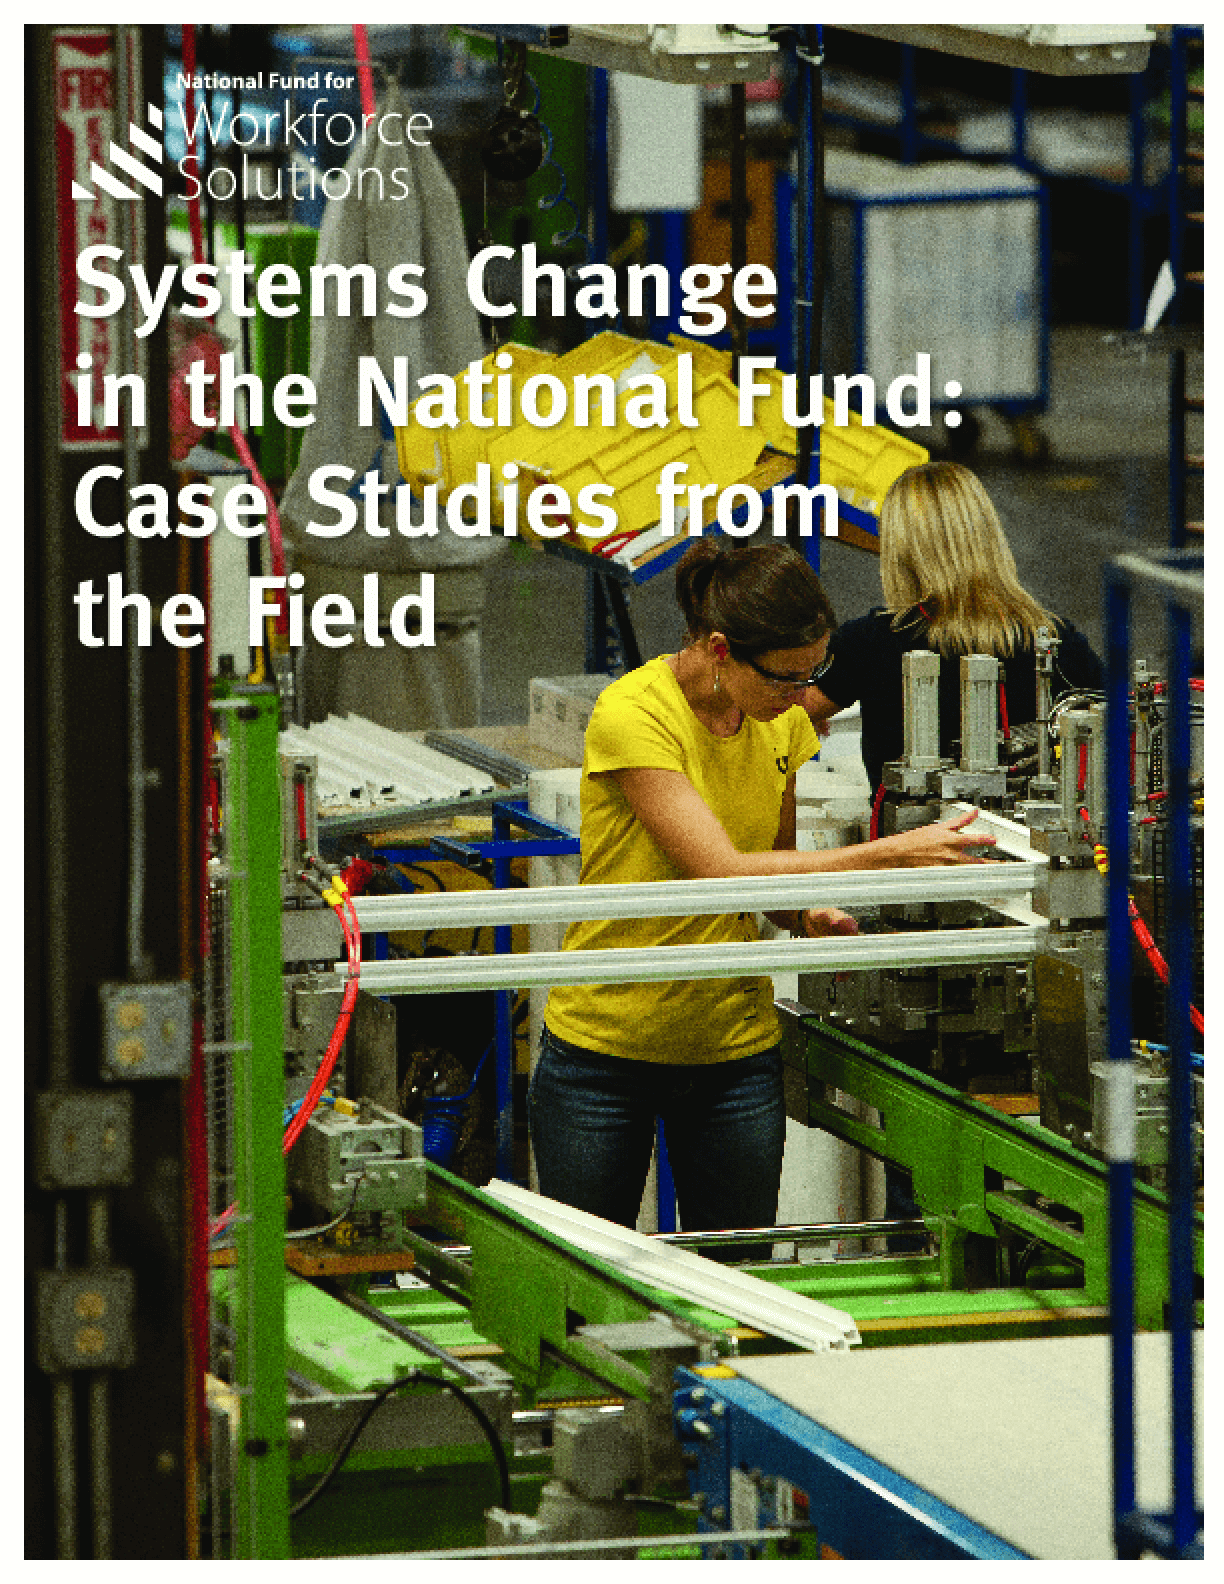 Systems Change in the National Fund: Case Studies from the Field